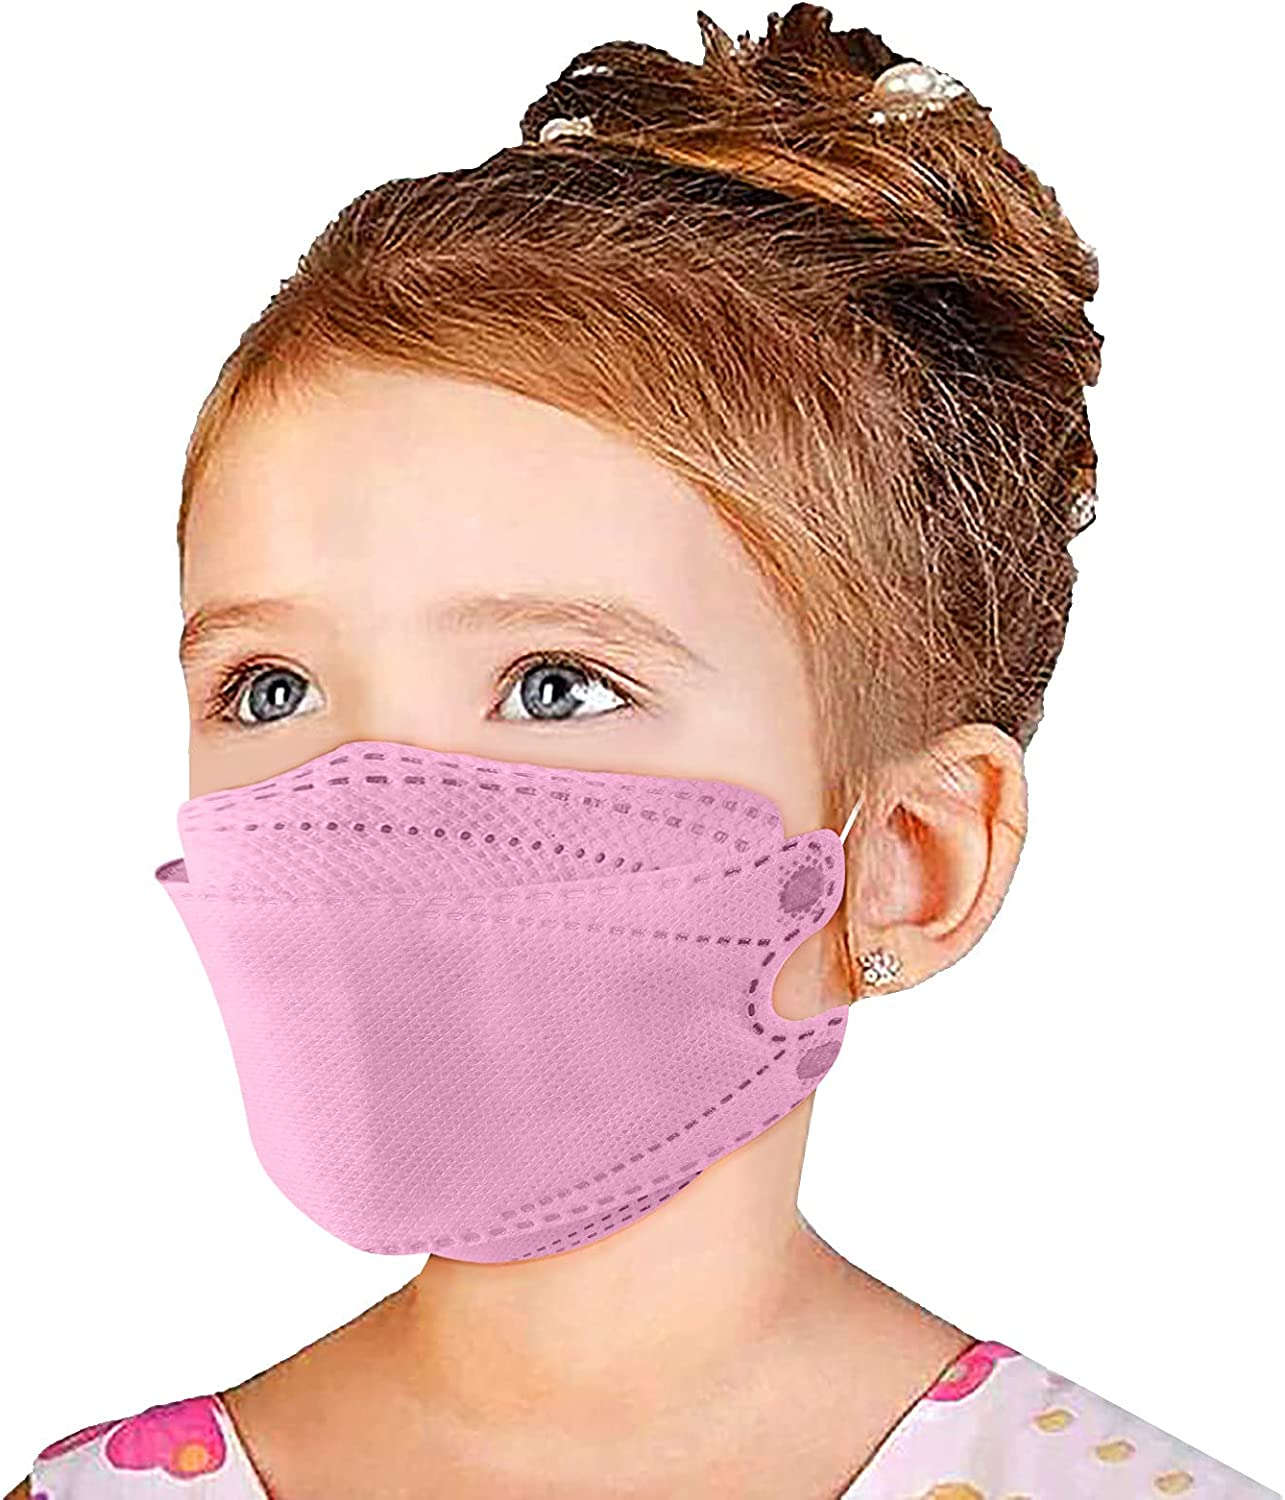 10PC Disposable Face Mask for - 2021 4-Ply Tulsa Mall Breathable Comforta Kids